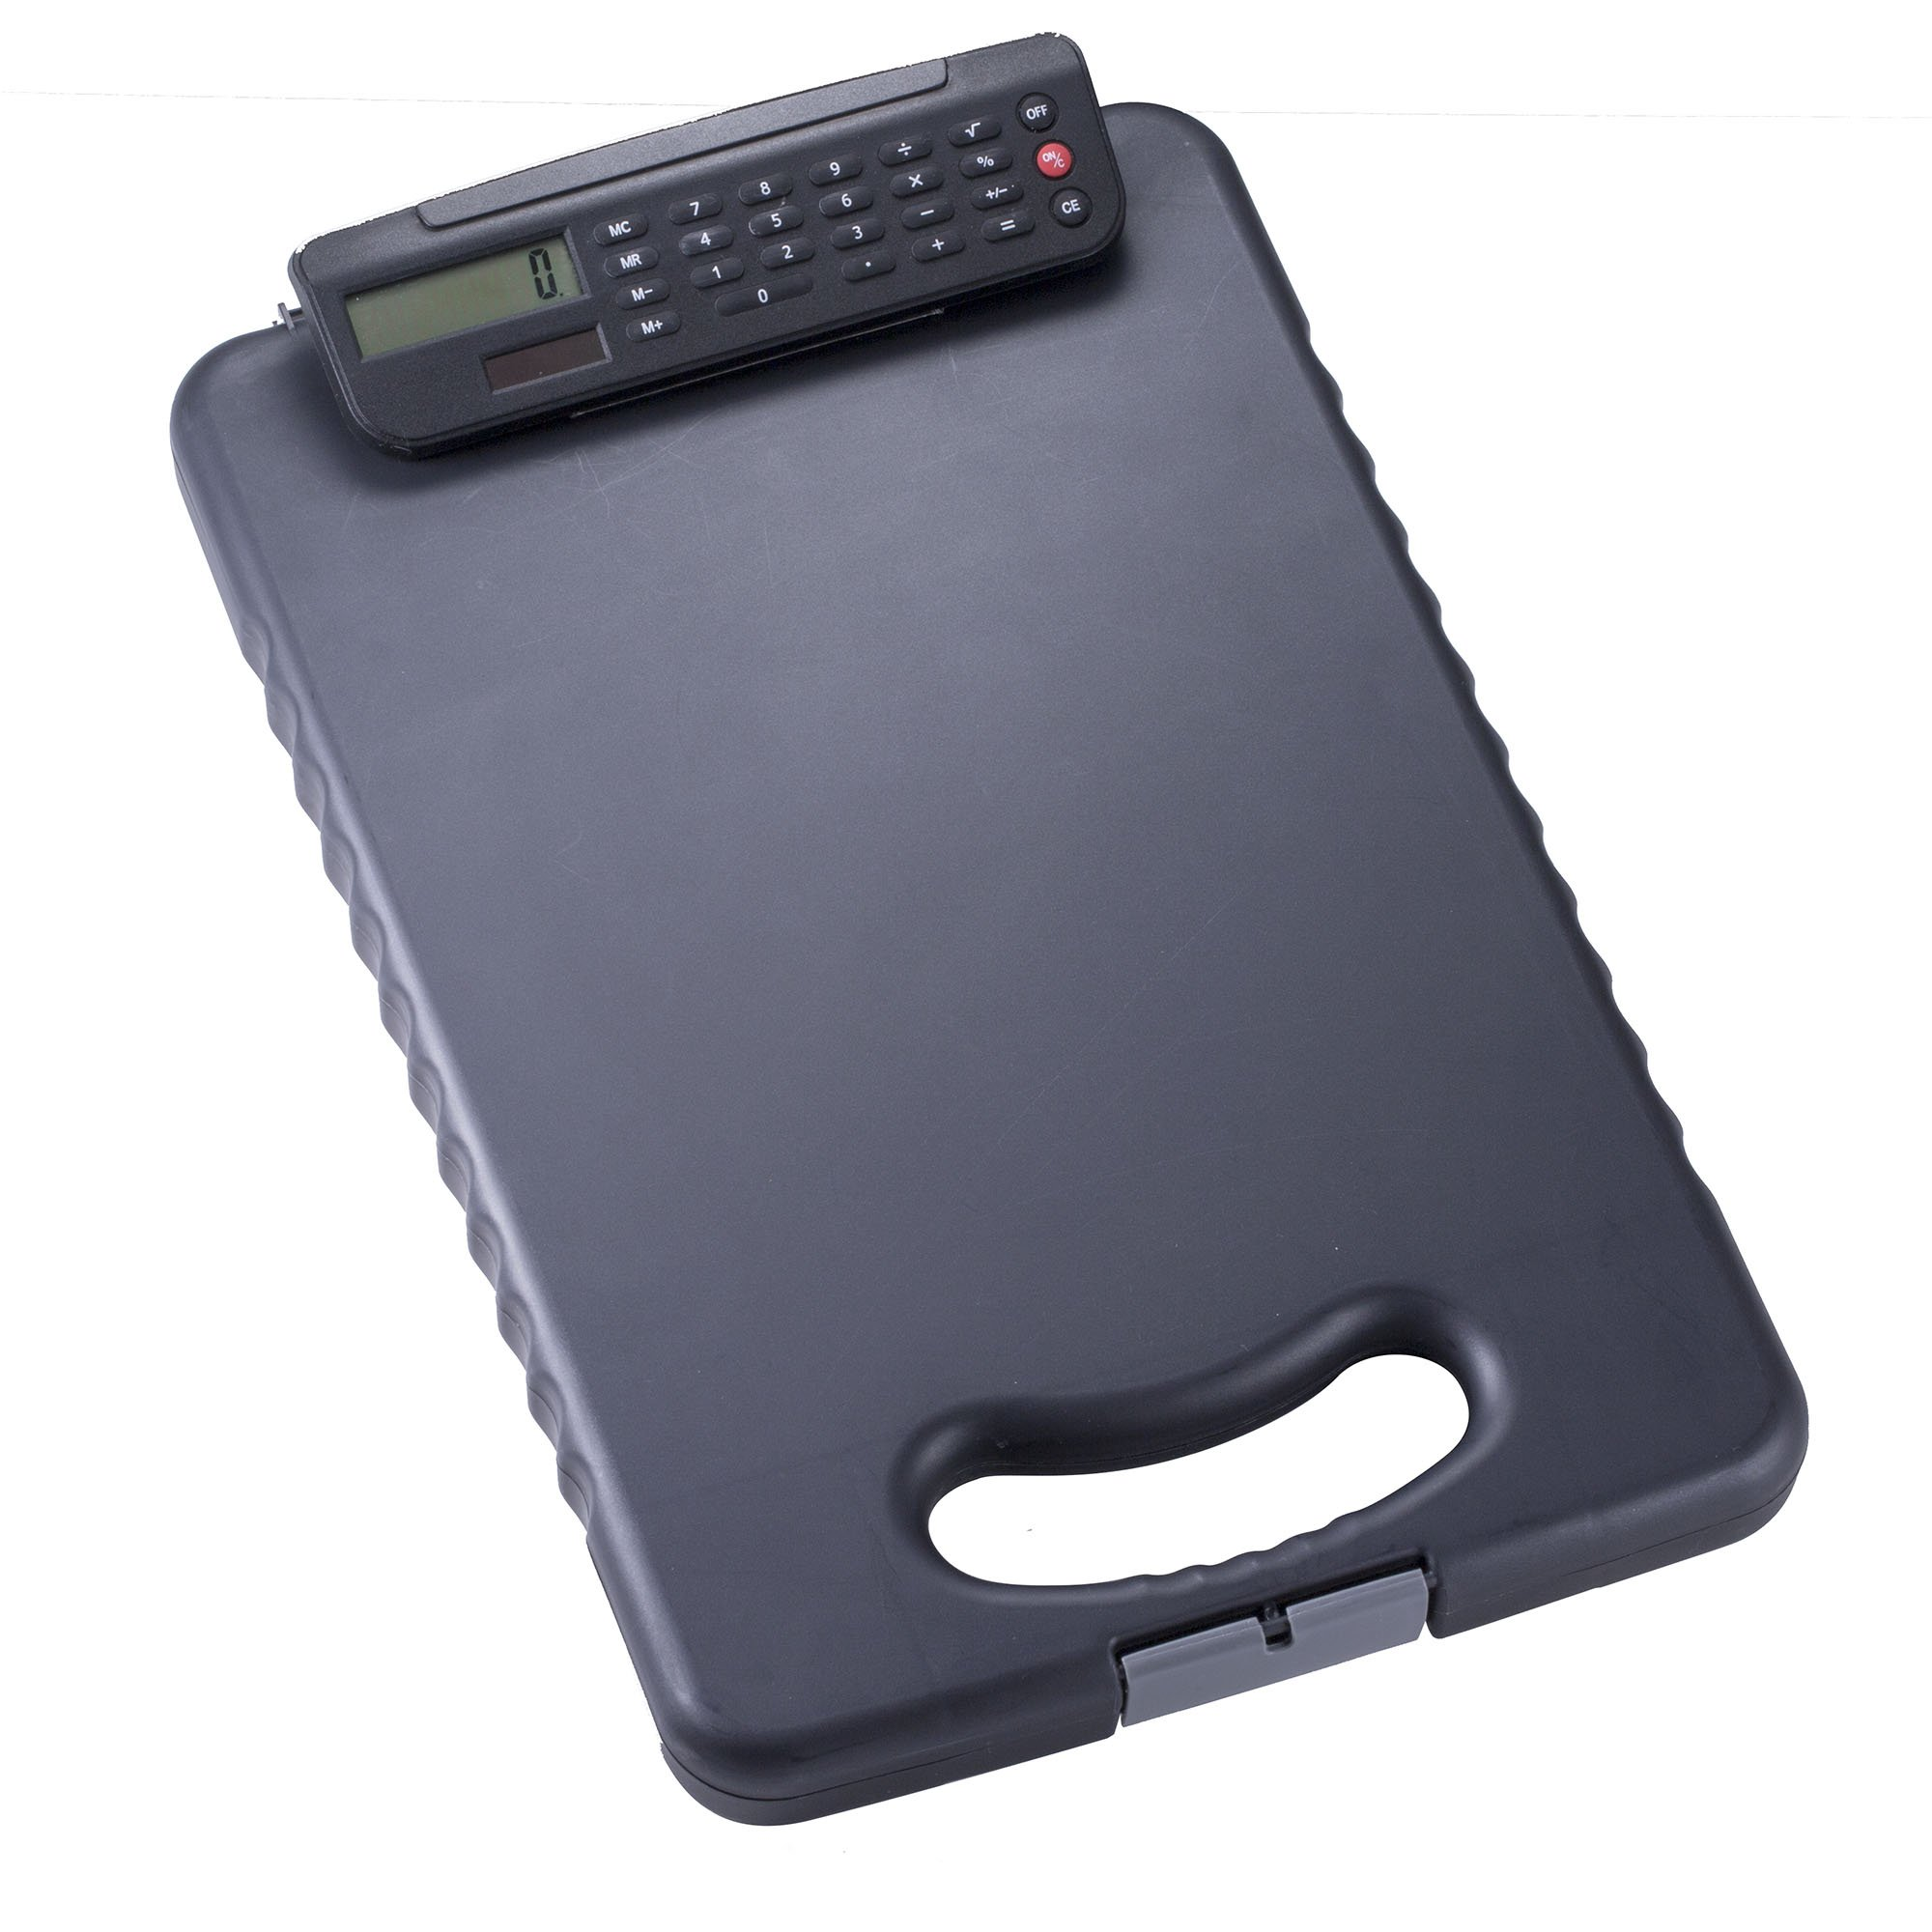 Officemate Tablet Clipboard with Calculator, Letter/A4 Size, Charcoal (83334)